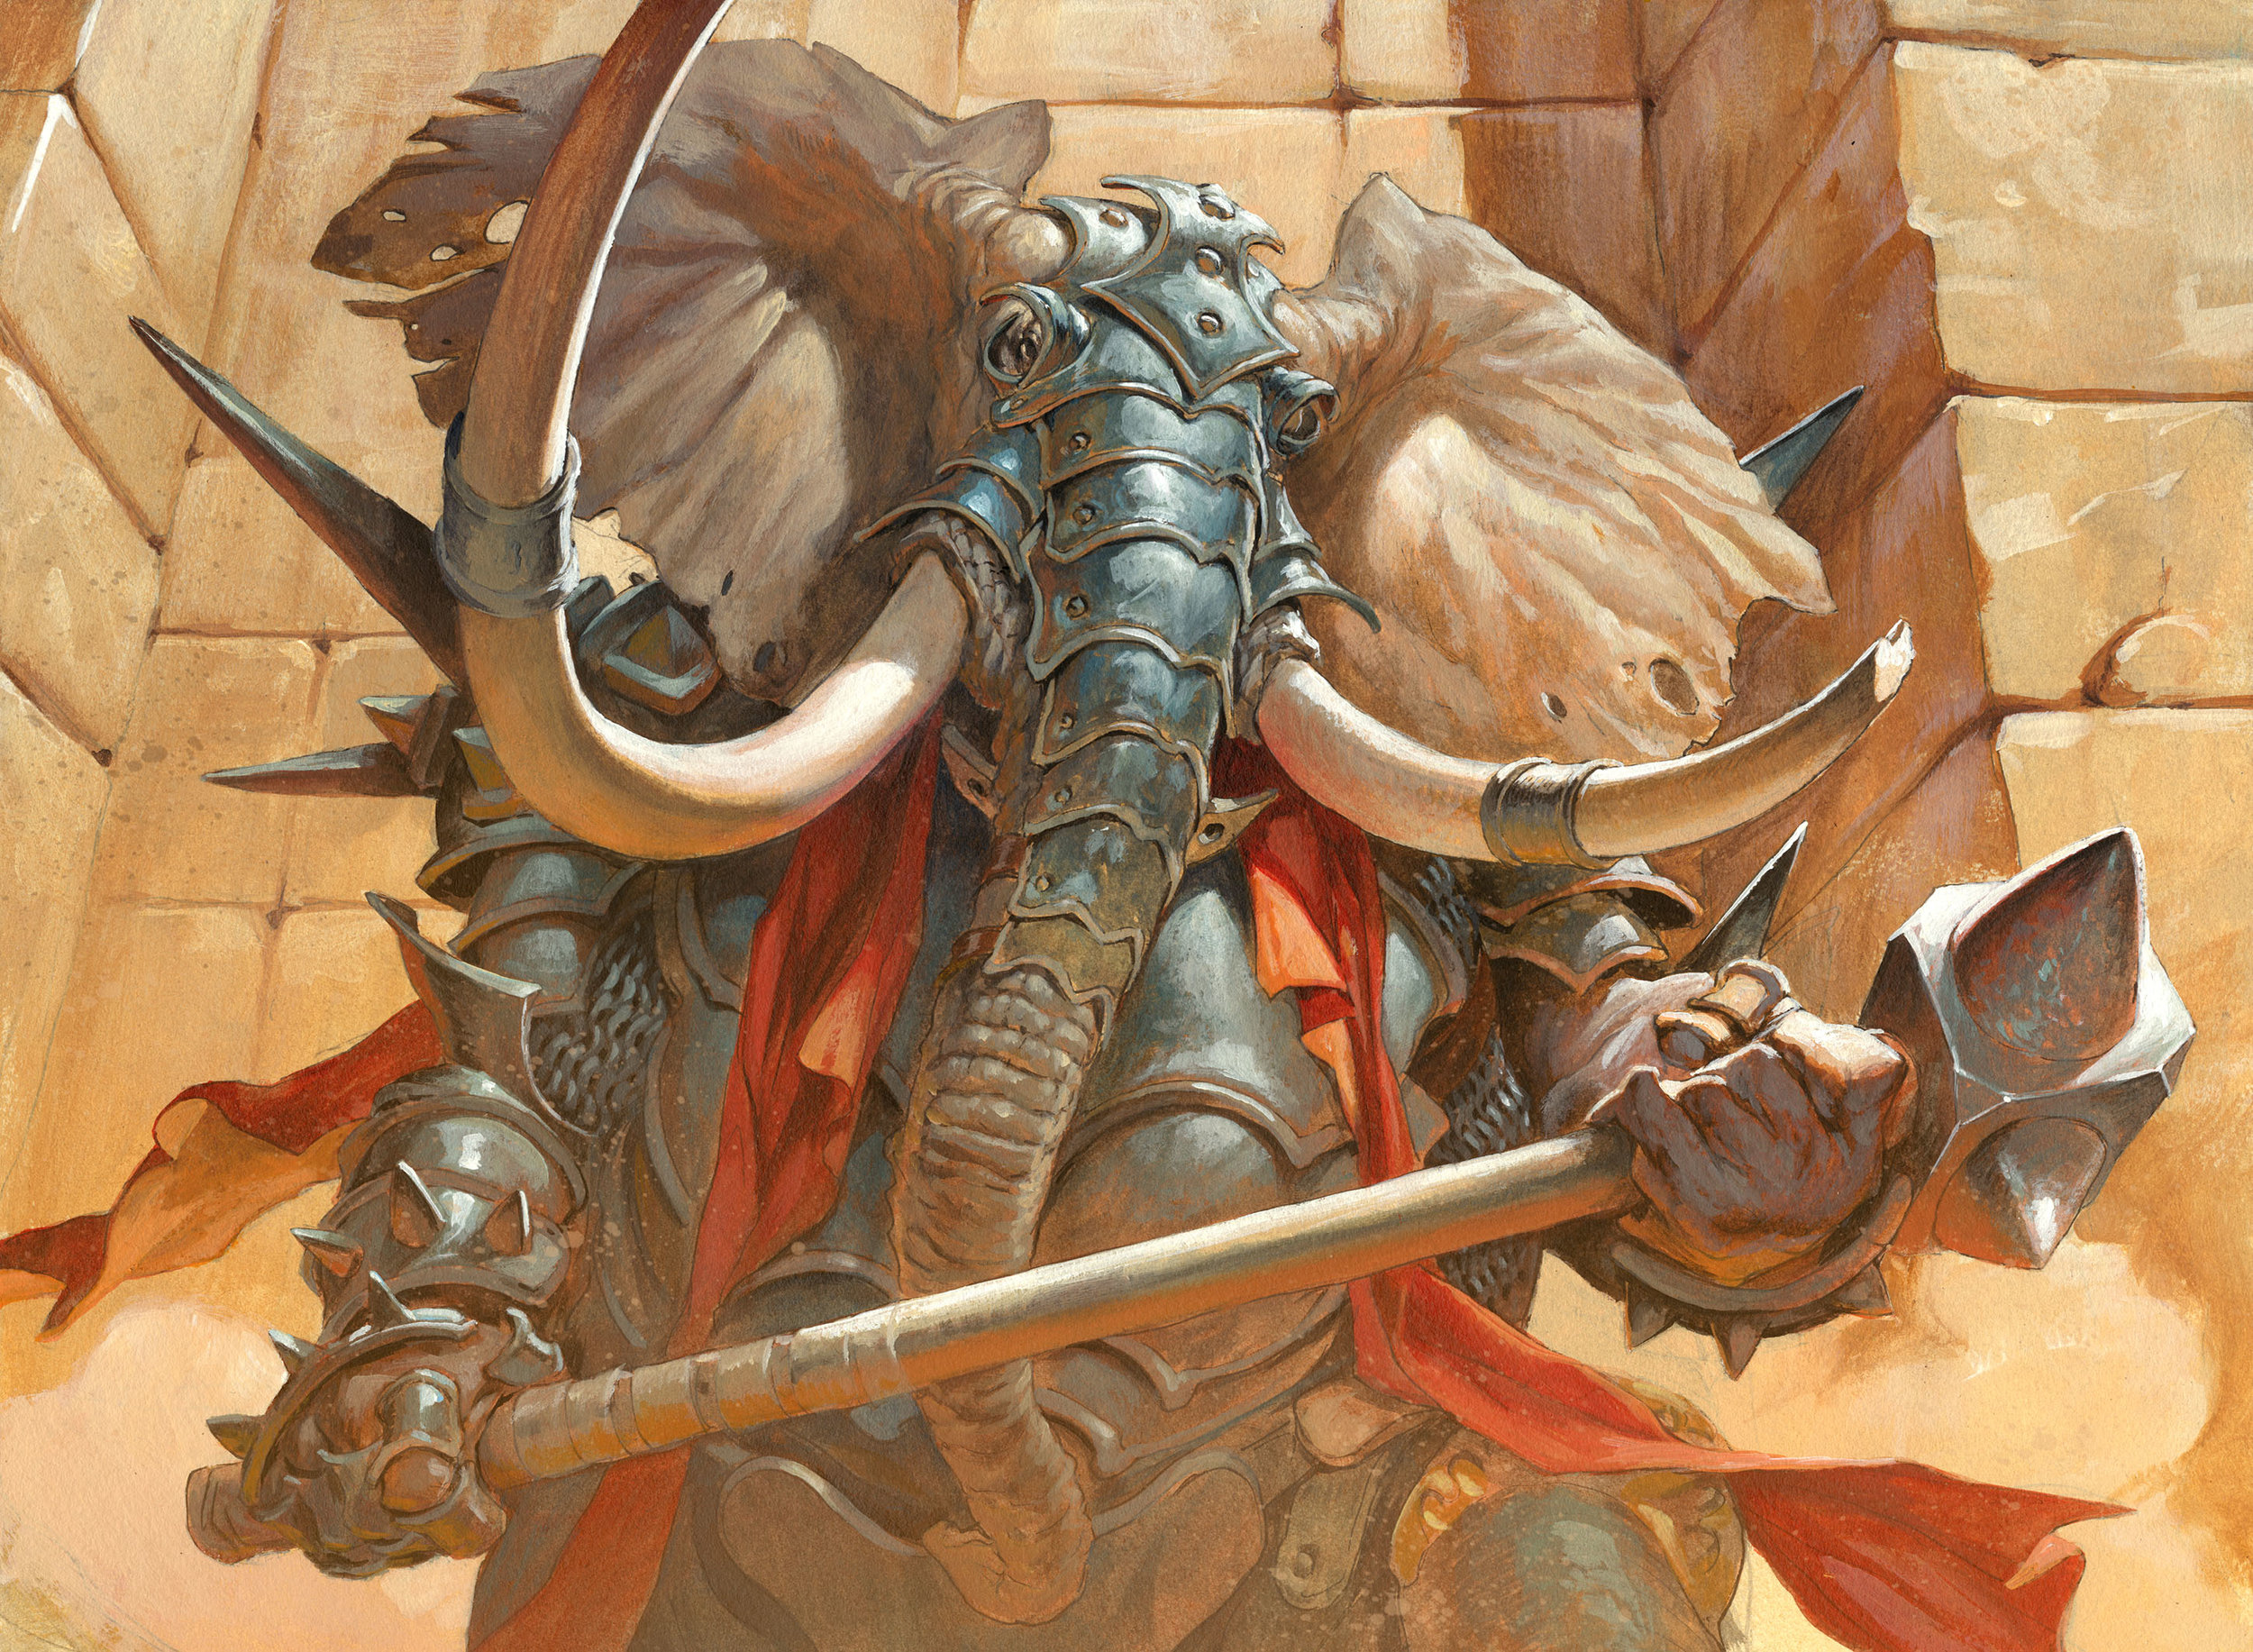 art id 405685 Loxodon Trooper final.jpg